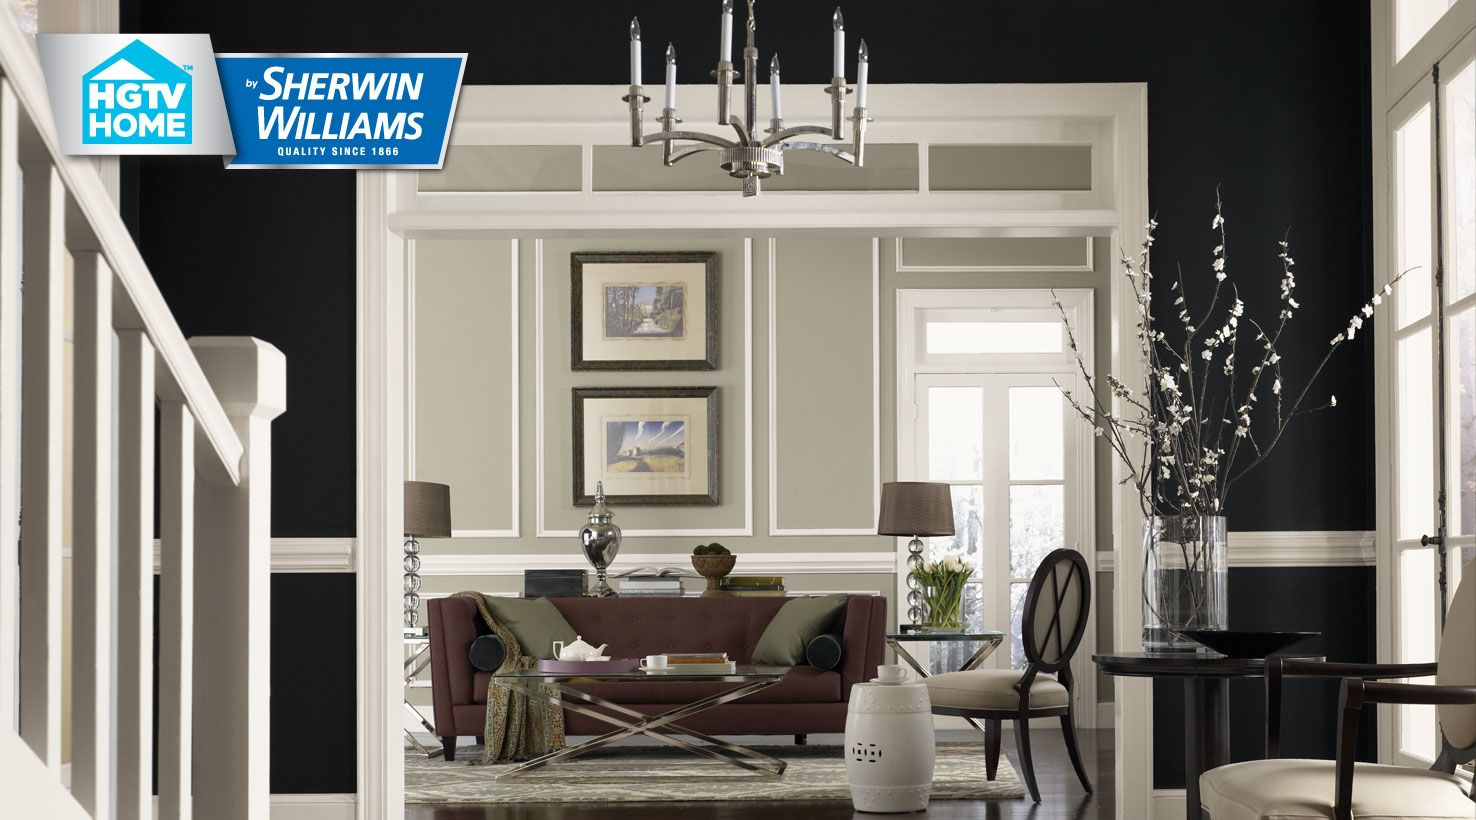 Sherwin Williams Livable Luxe Room Ideas Sw Hgtvlivableluxe 1